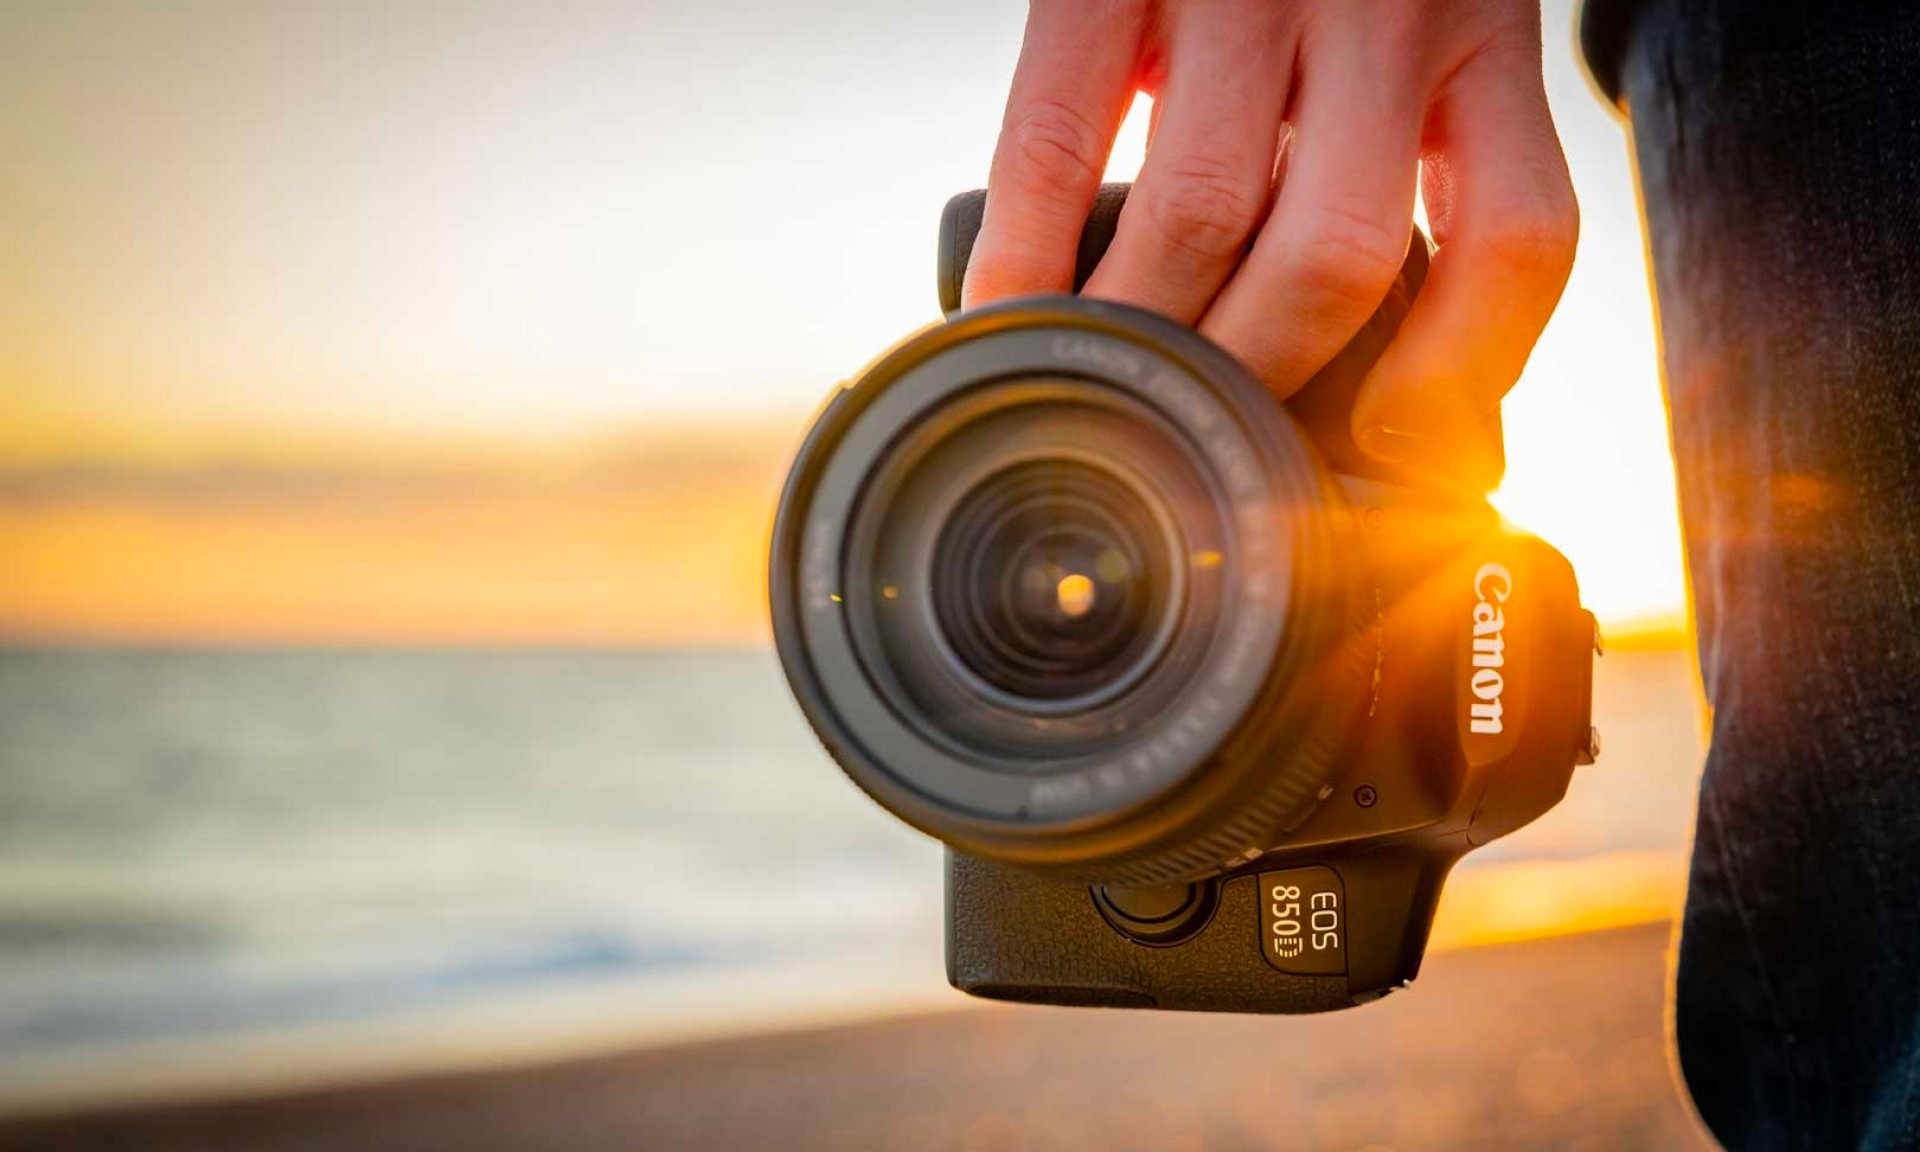 Canon 850D reviewed; is this sub-£1,000 DSLR camera any good? – Which? News